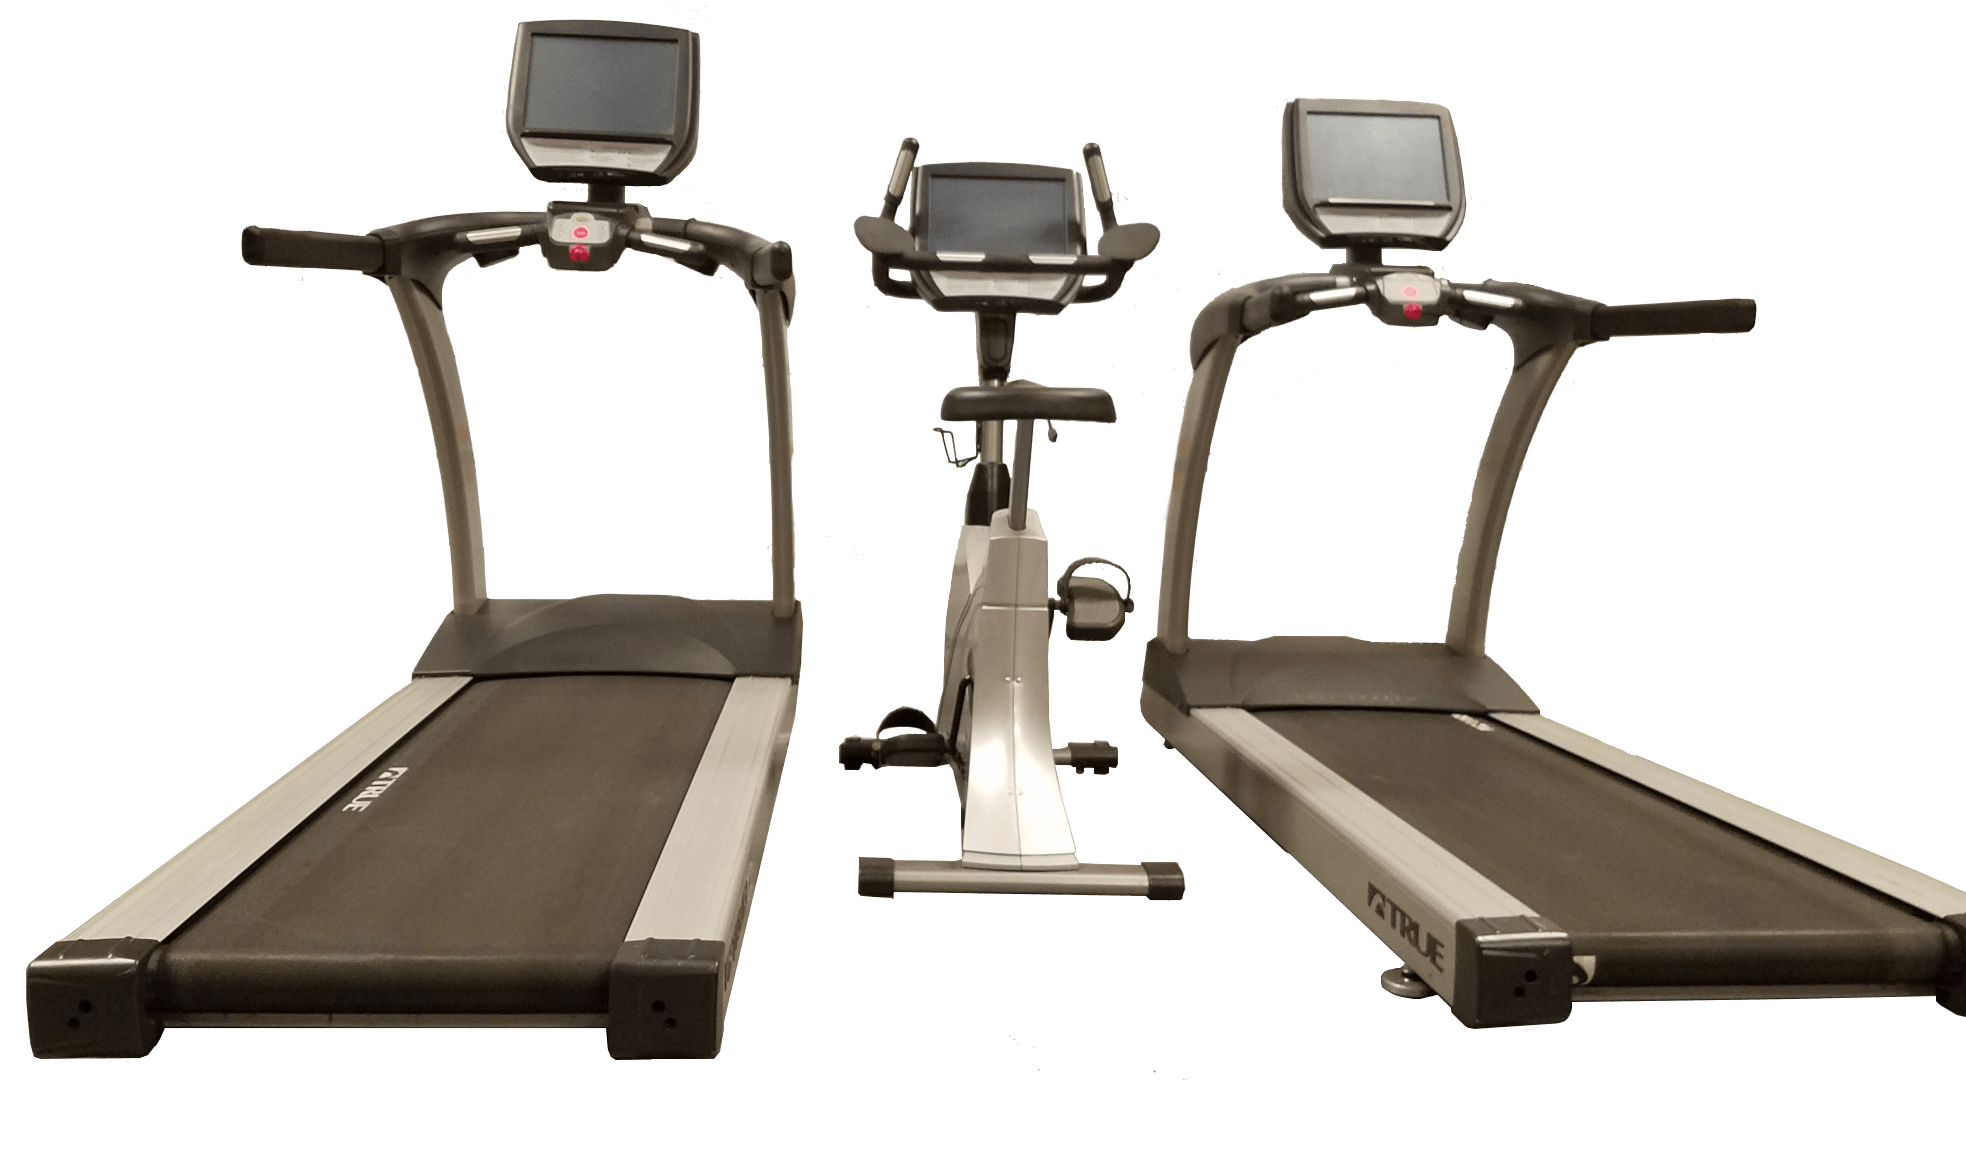 Pre-owned TRUE commercial cardio with embedded touchscreen TV/ display